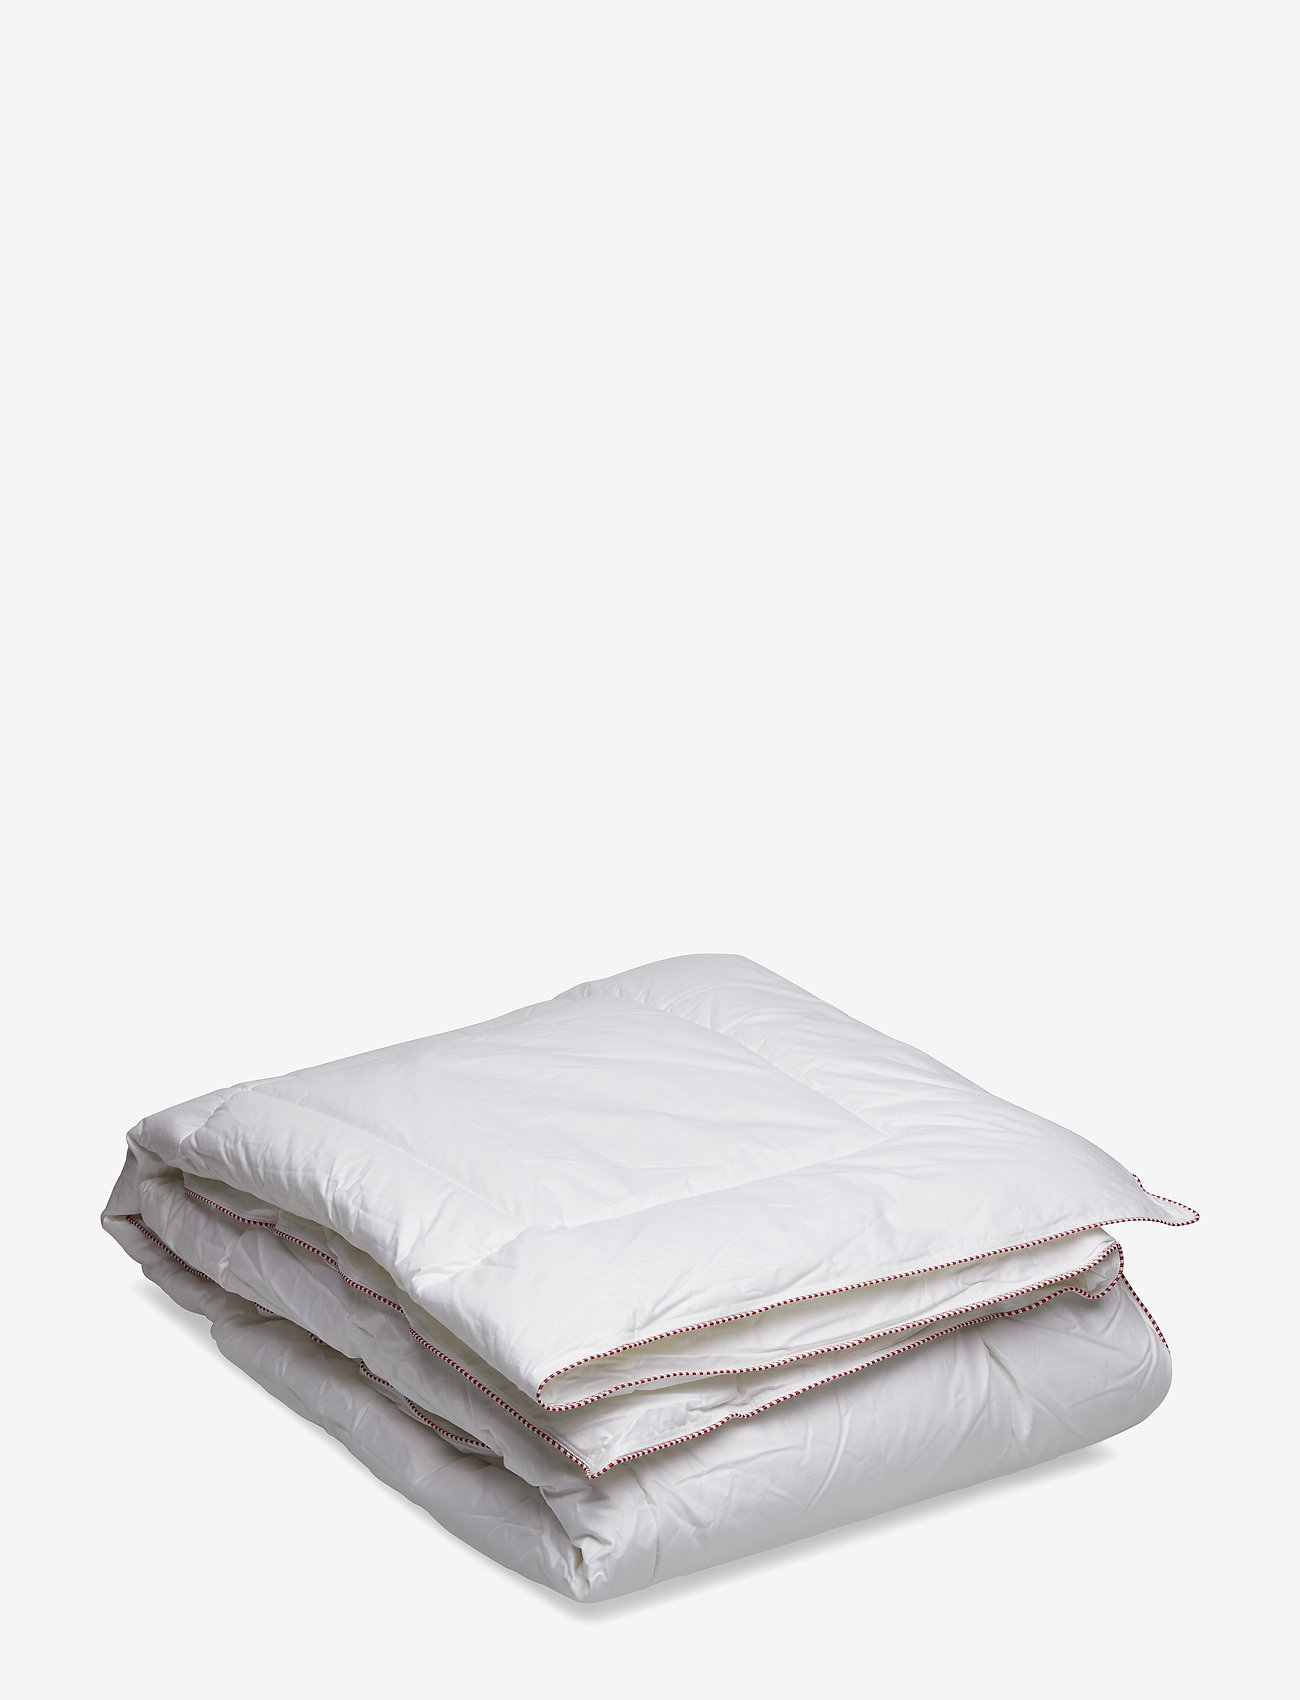 Gripsholm - QUILT NELSON WARM - tyynyt & peitot - white